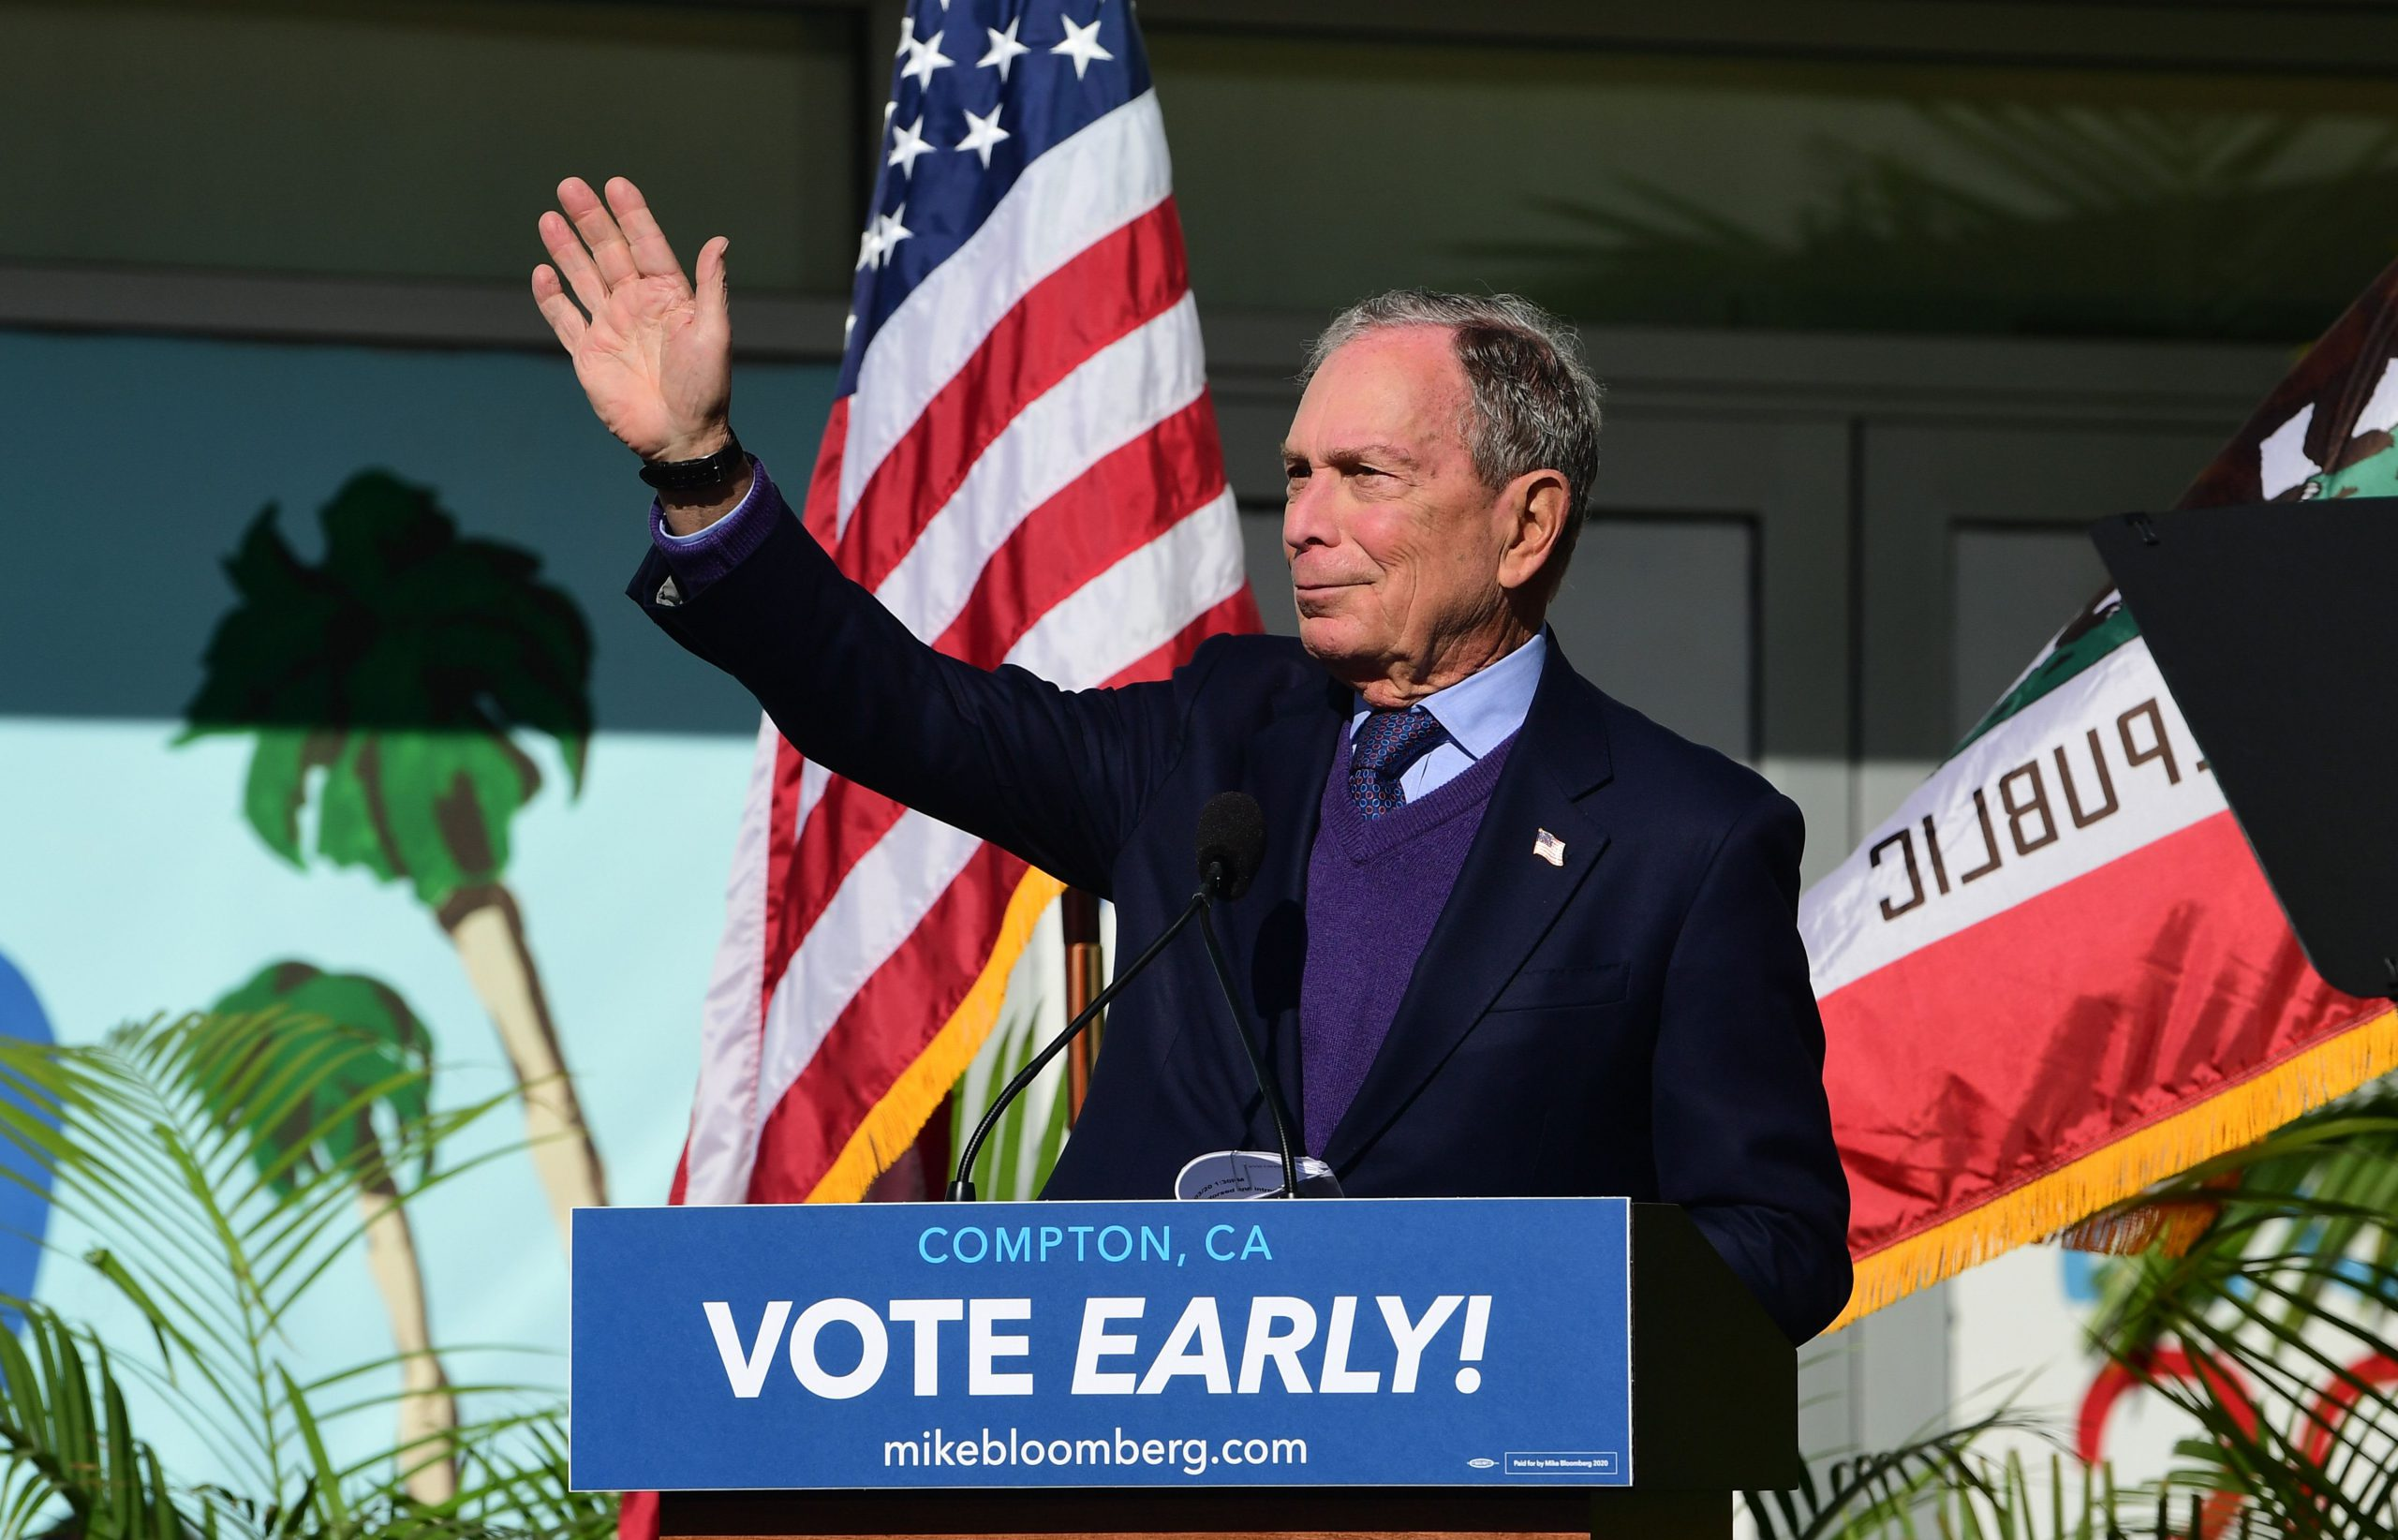 Mike Bloomberg has a rocky history with unions – here's how it could affect the Democratic primary campaign